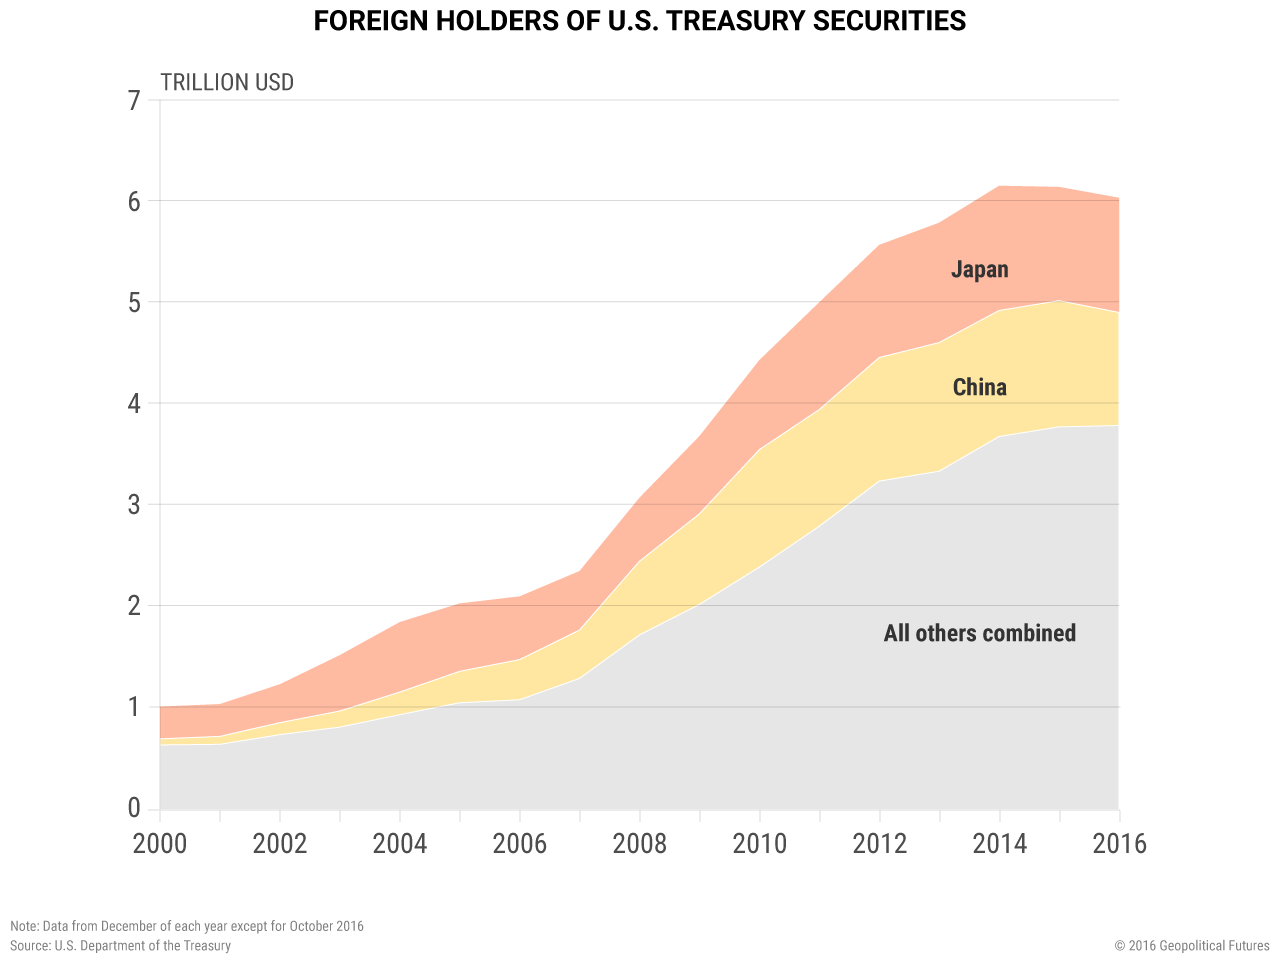 us-treasury-securities-foreign-holders